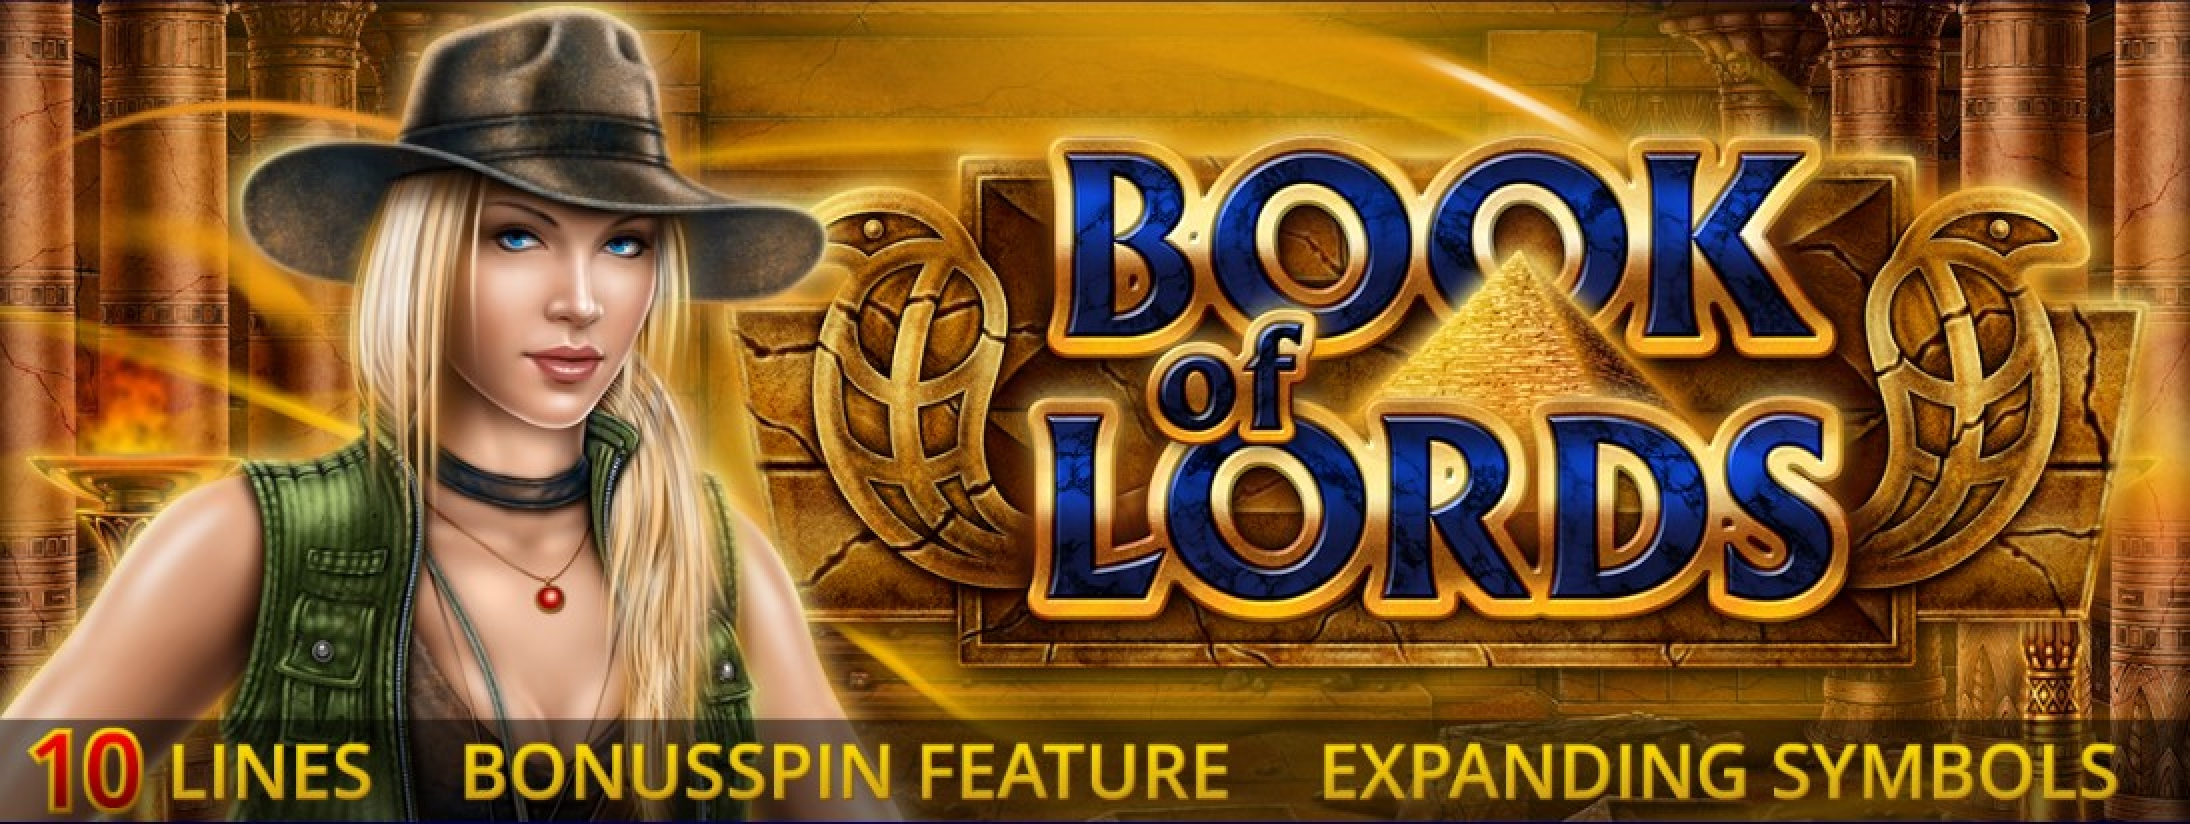 The Book of Lords Online Slot Demo Game by Amatic Industries